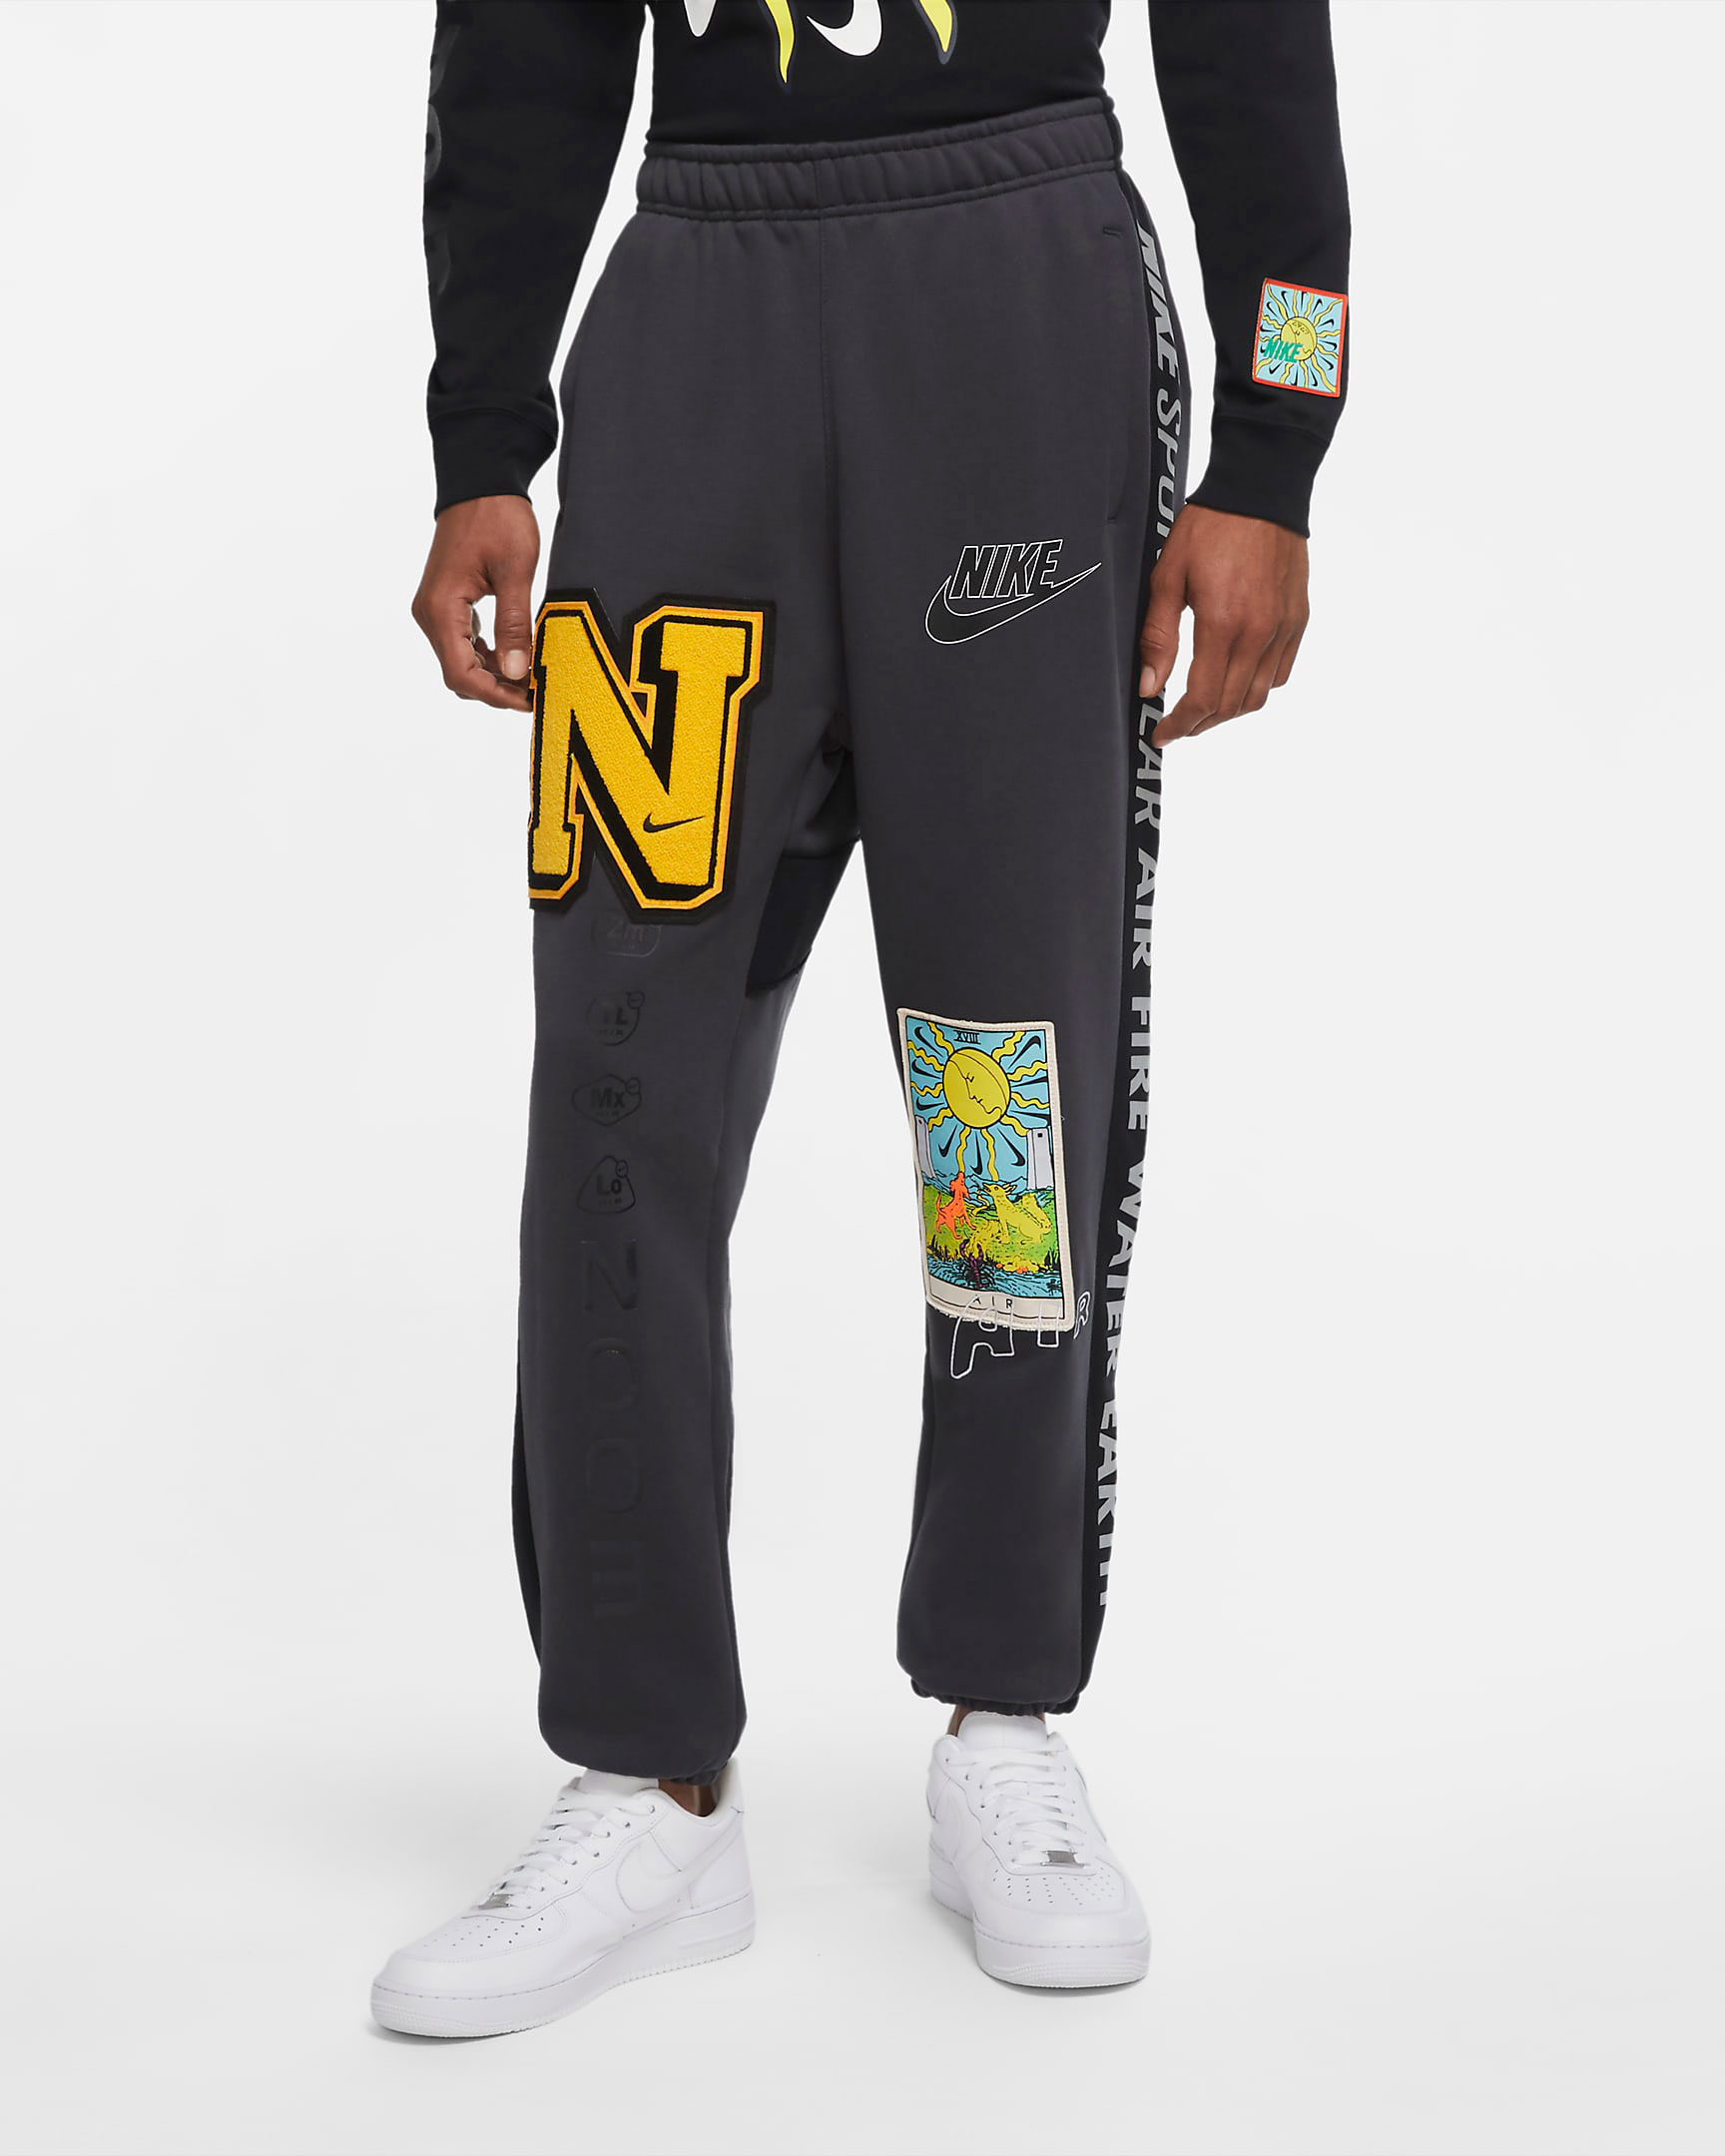 nike-dunk-high-varsity-maize-pants-match-1